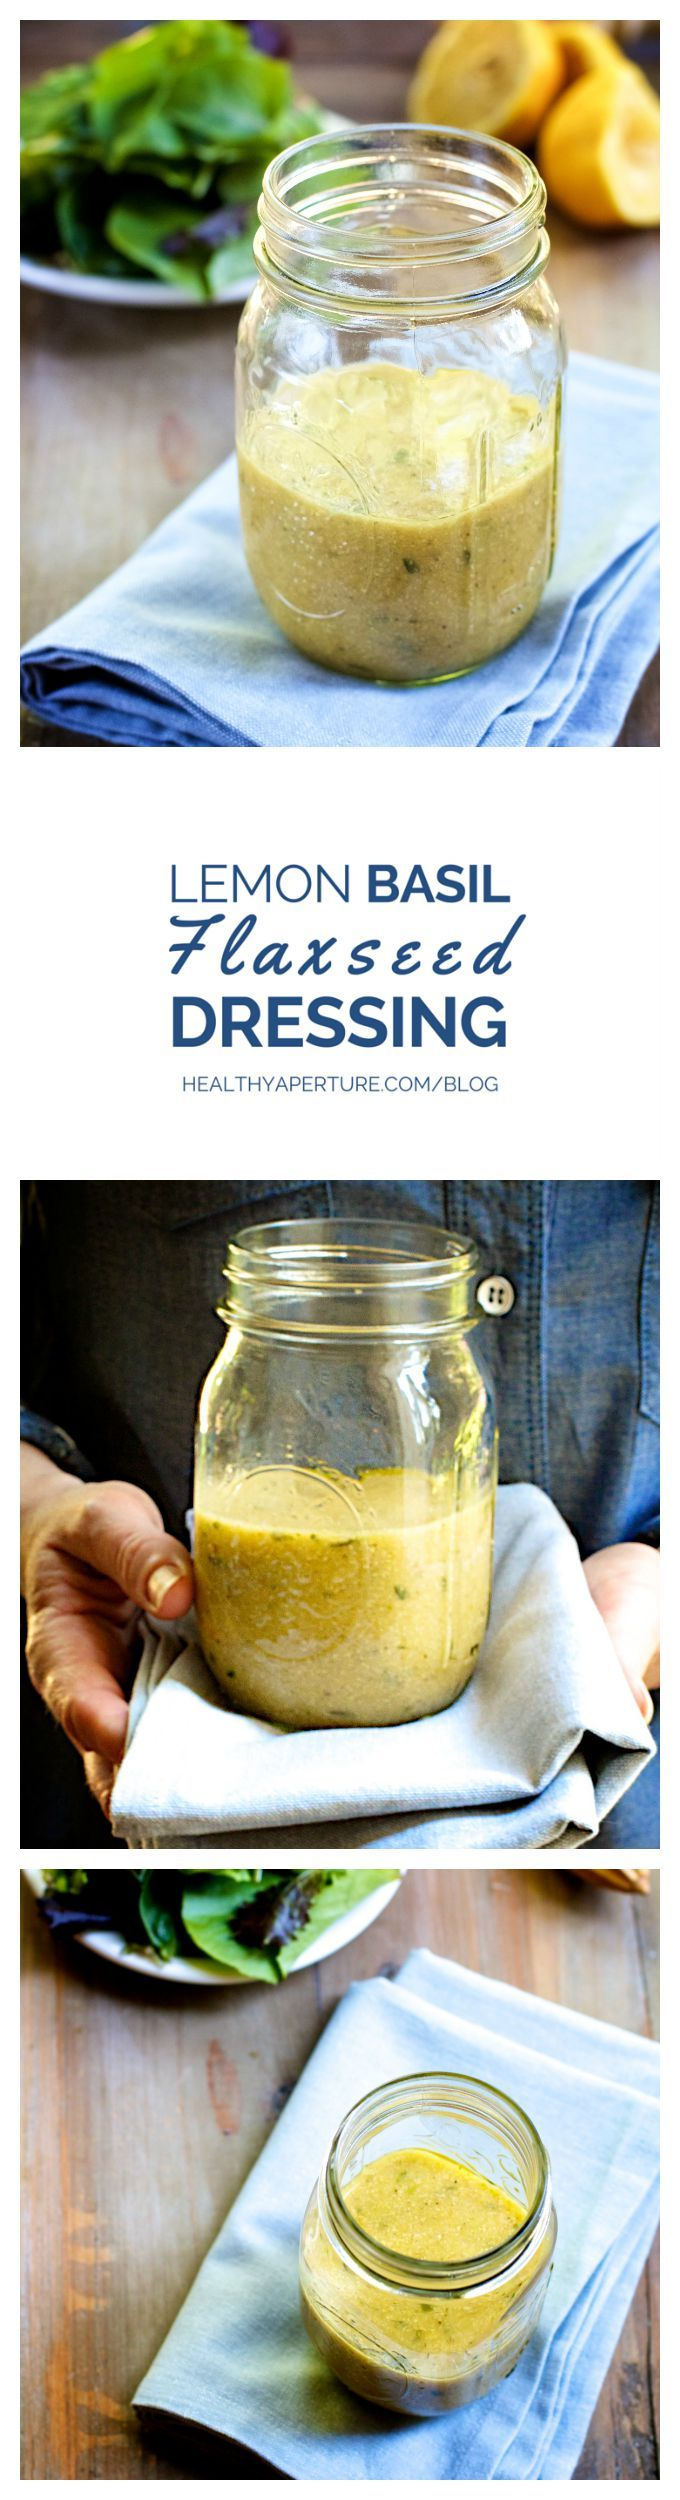 Use nutritional superfood flaxseeds in this quick and easy salad dressing recipe. Combine fresh lemon and basil with ground golden flax to create a thick and hearty dressing without added fat and calories. Recipe by @ReganJonesRD on HealthyAperture.com.